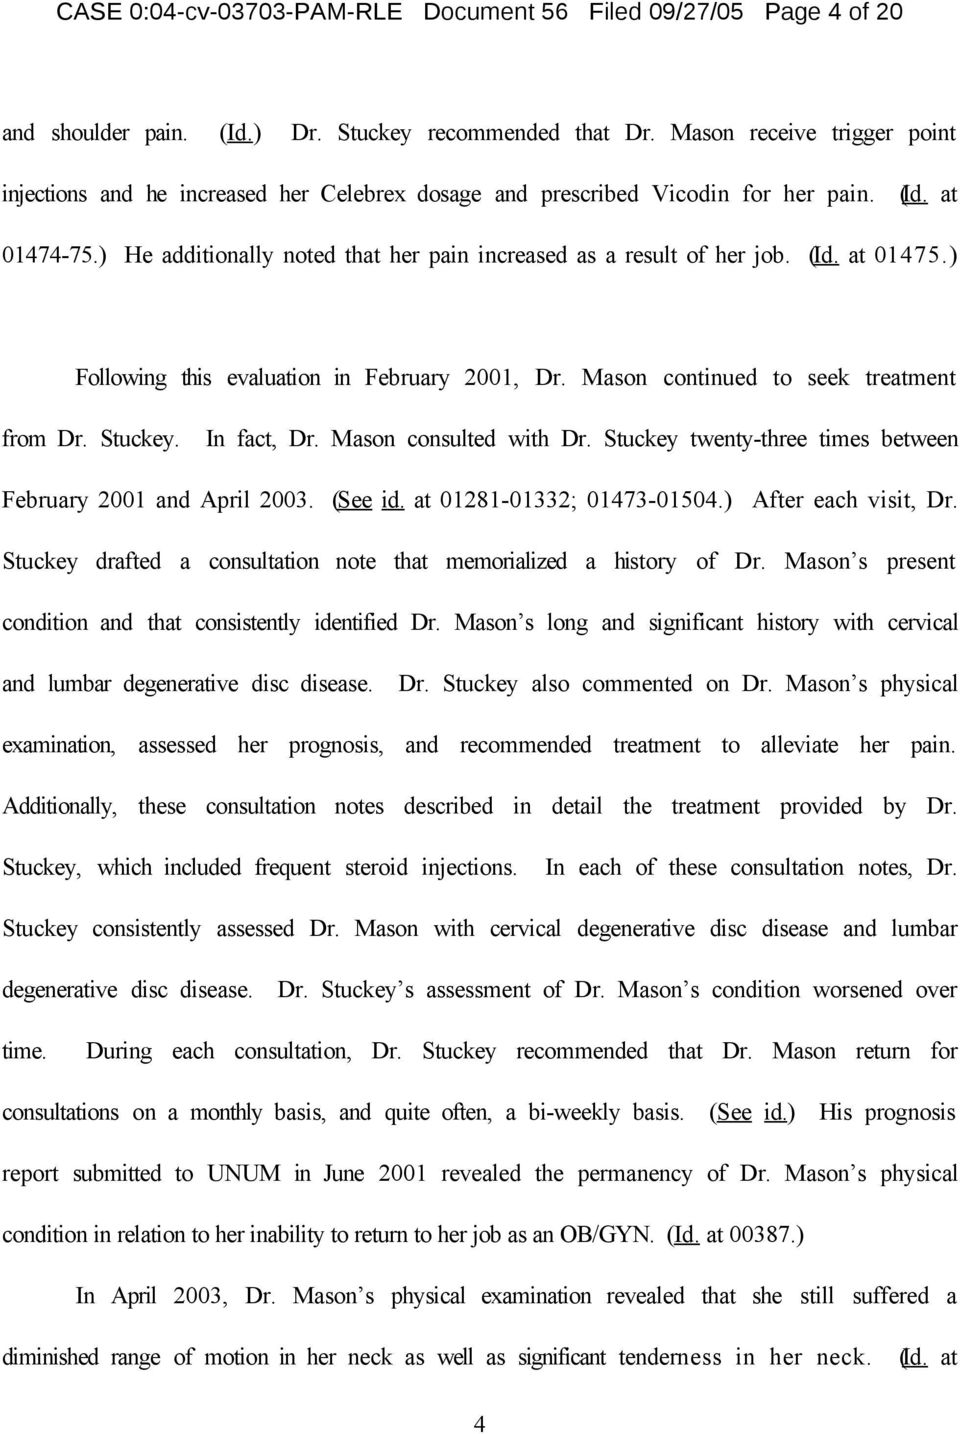 ) He additionally noted that her pain increased as a result of her job. (Id. at 01475.) Following this evaluation in February 2001, Dr. Mason continued to seek treatment from Dr. Stuckey. In fact, Dr.